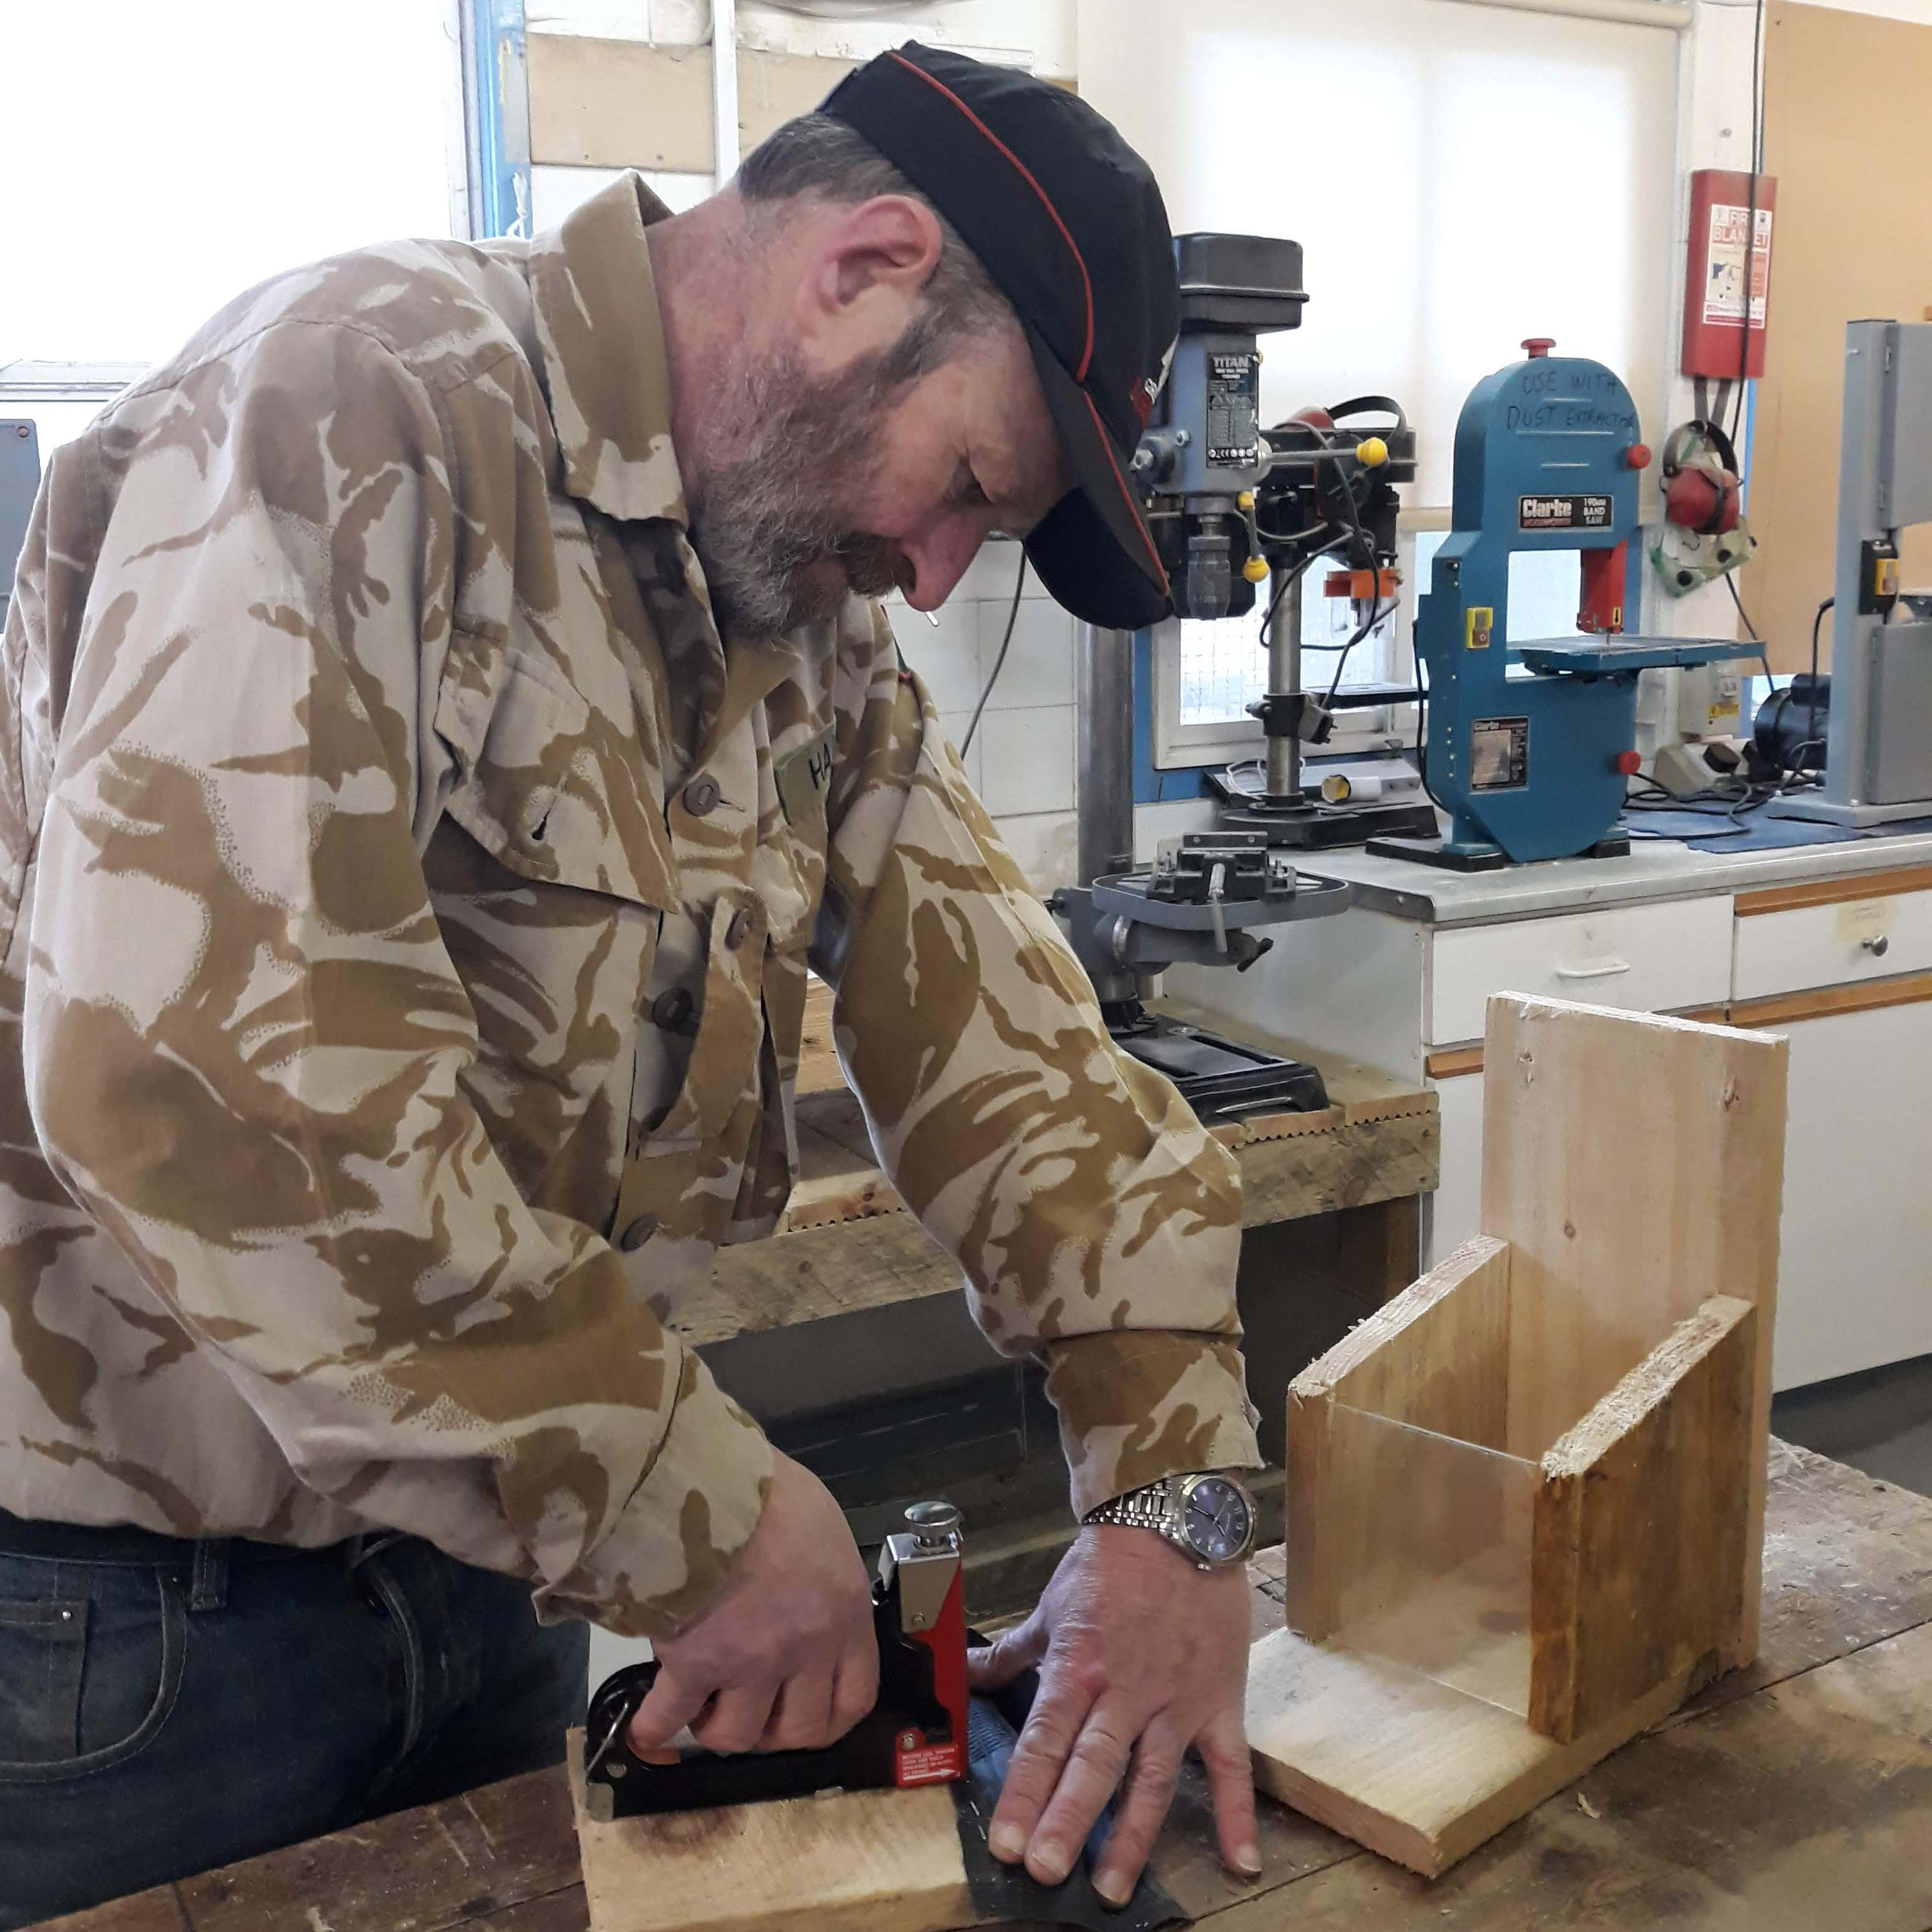 Gala Men's Shed take on the feeder box challenge!